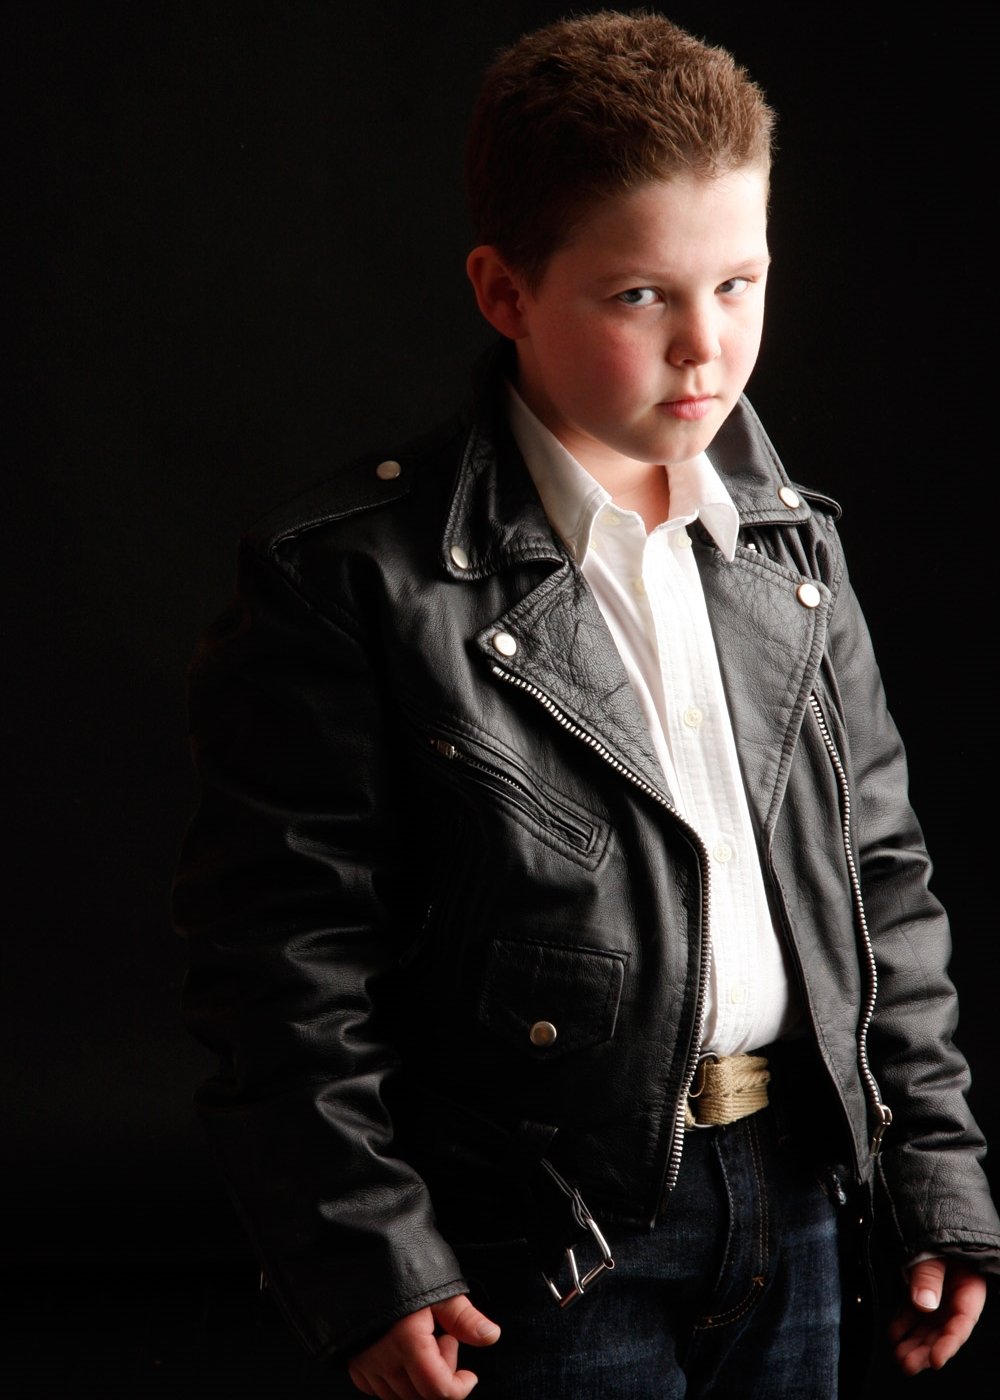 kids_child_actors_headshot_resume_professional_flatiron_nyc_3.jpg